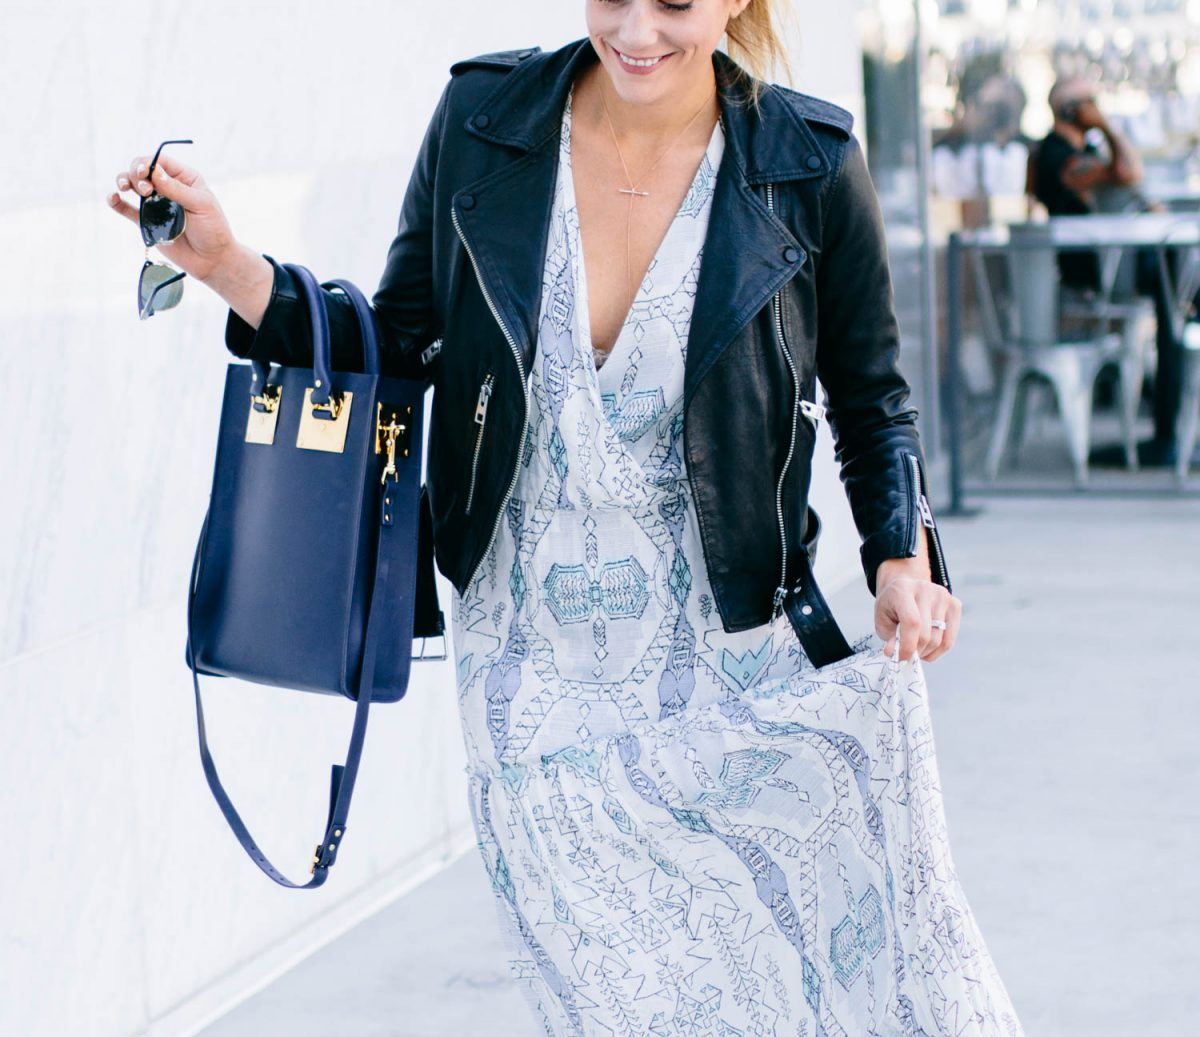 How to Wear Maxi Dresses in Winter Stylist Melbourne